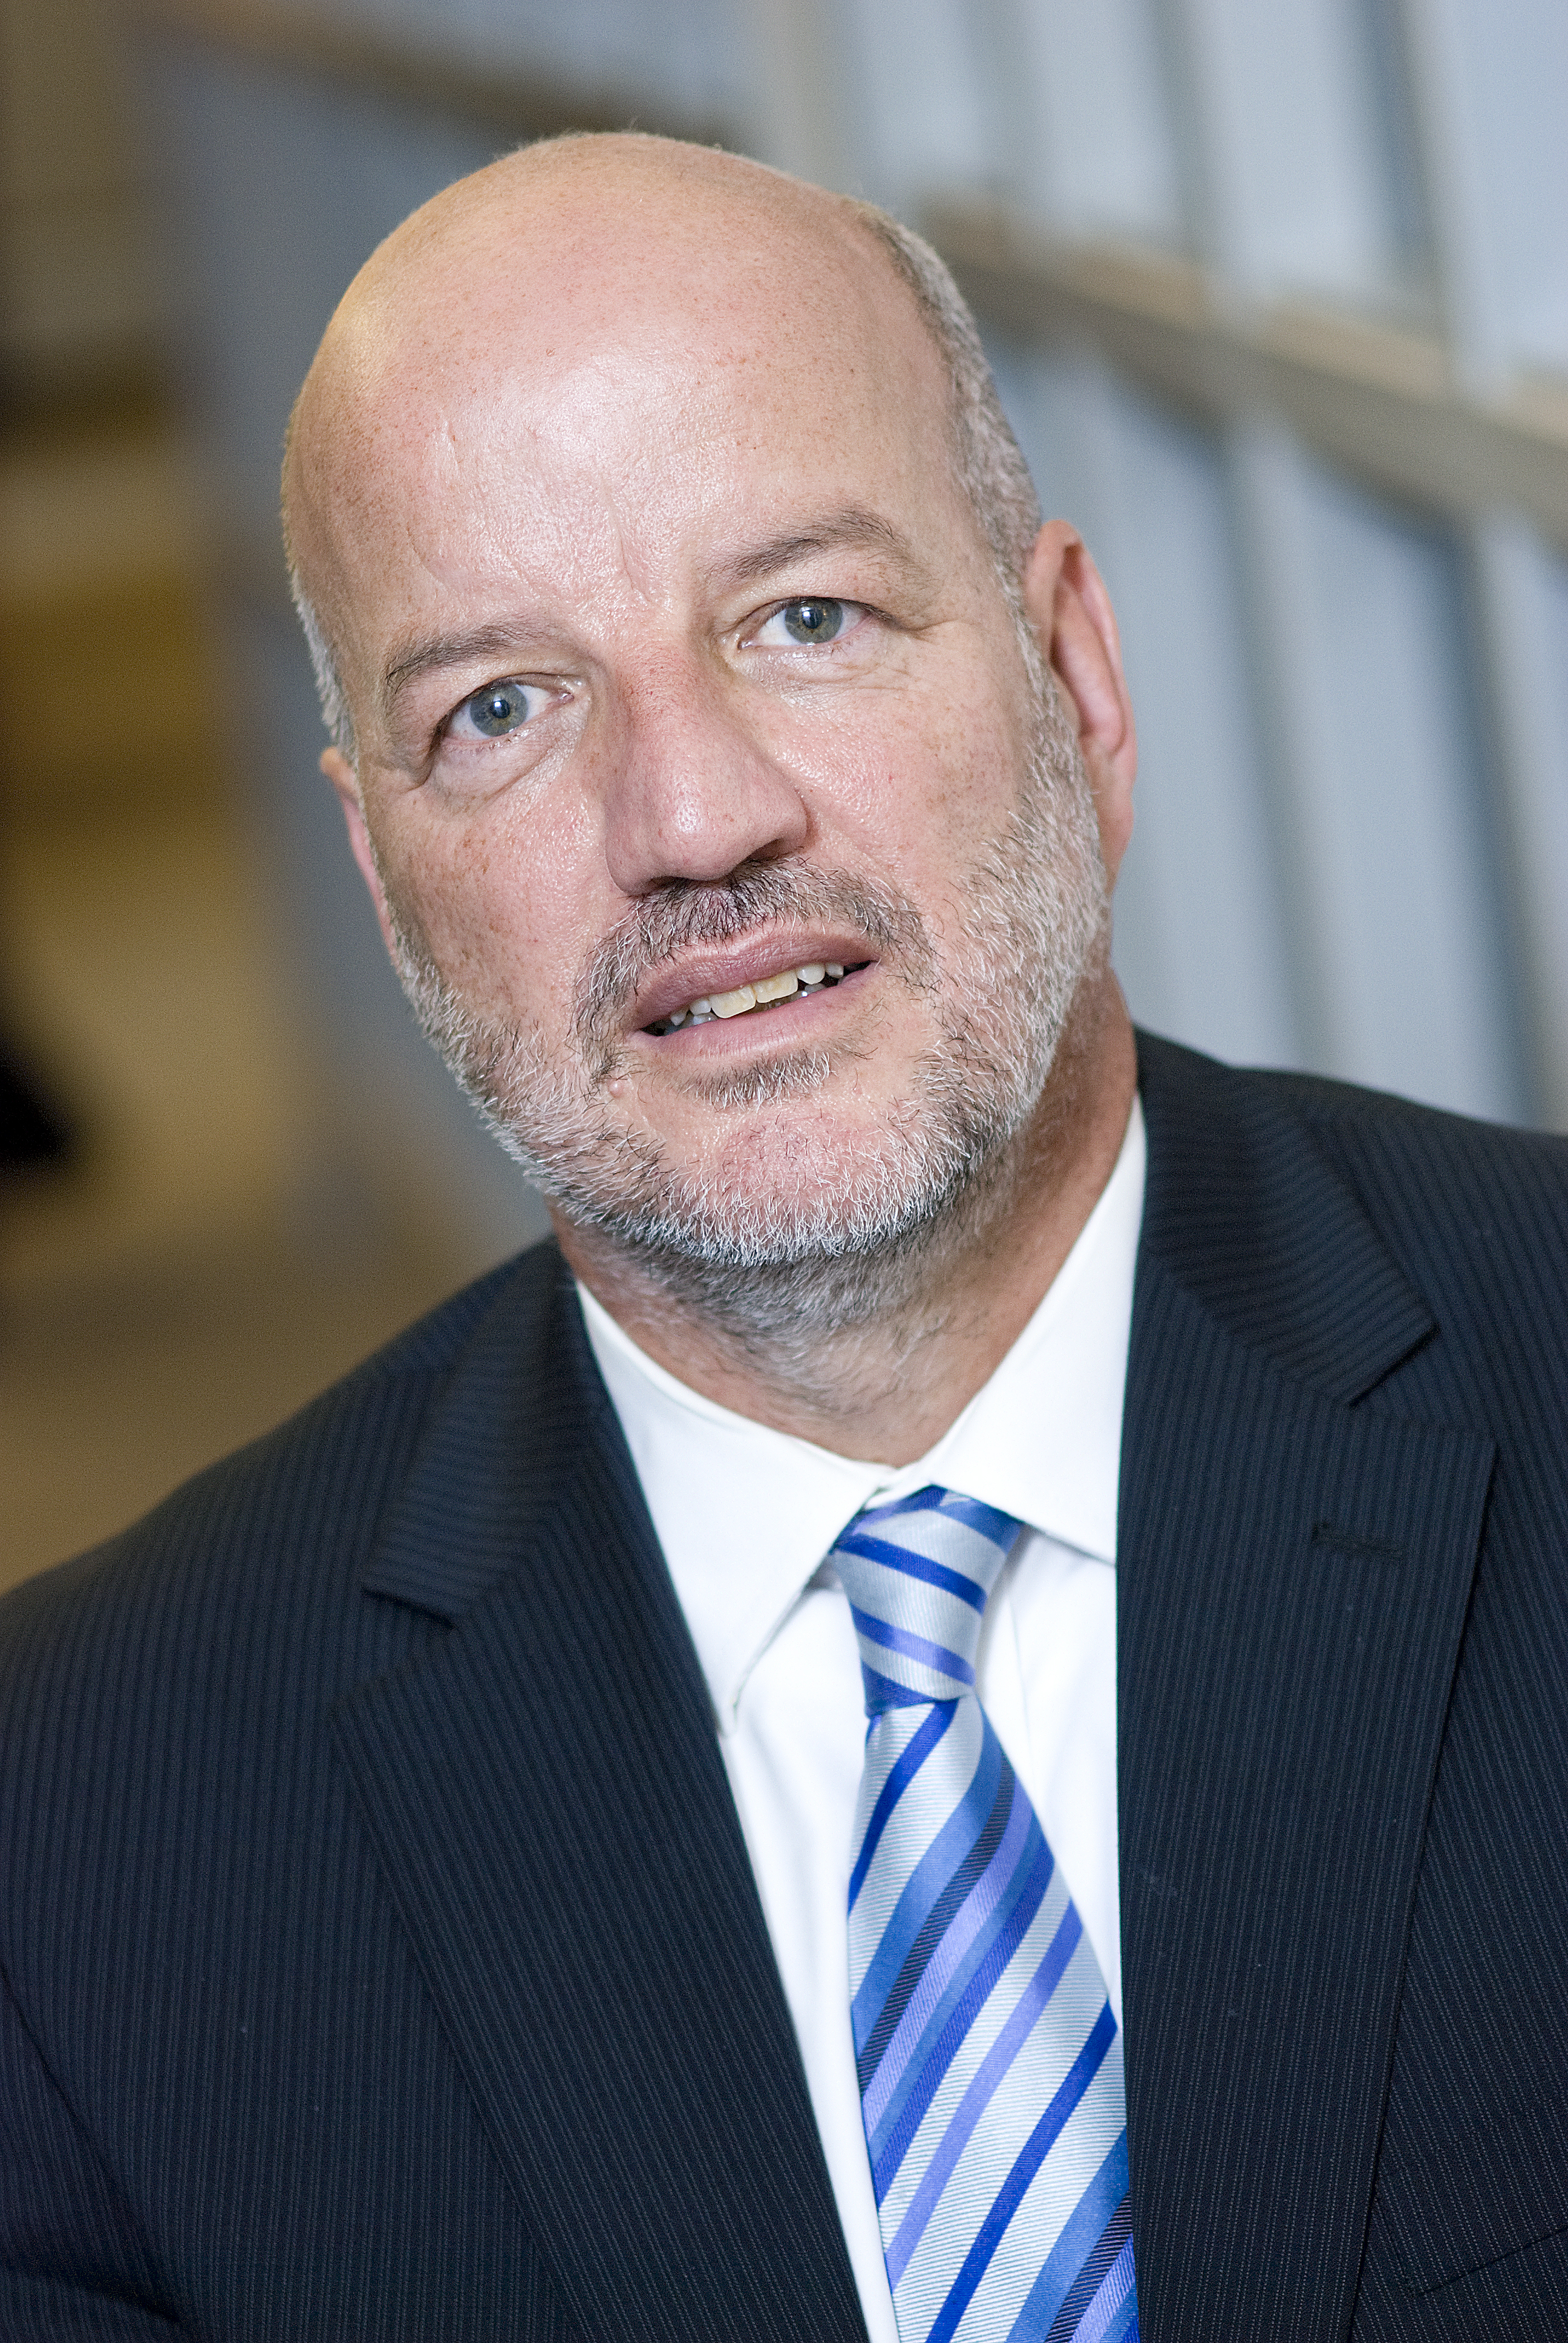 Graham Murnane is a Director of Murgitroyd Group PLC, the holding company of Murgitroyd & Company Limited and joined the firm in 1996. (Photo: Business Wire)